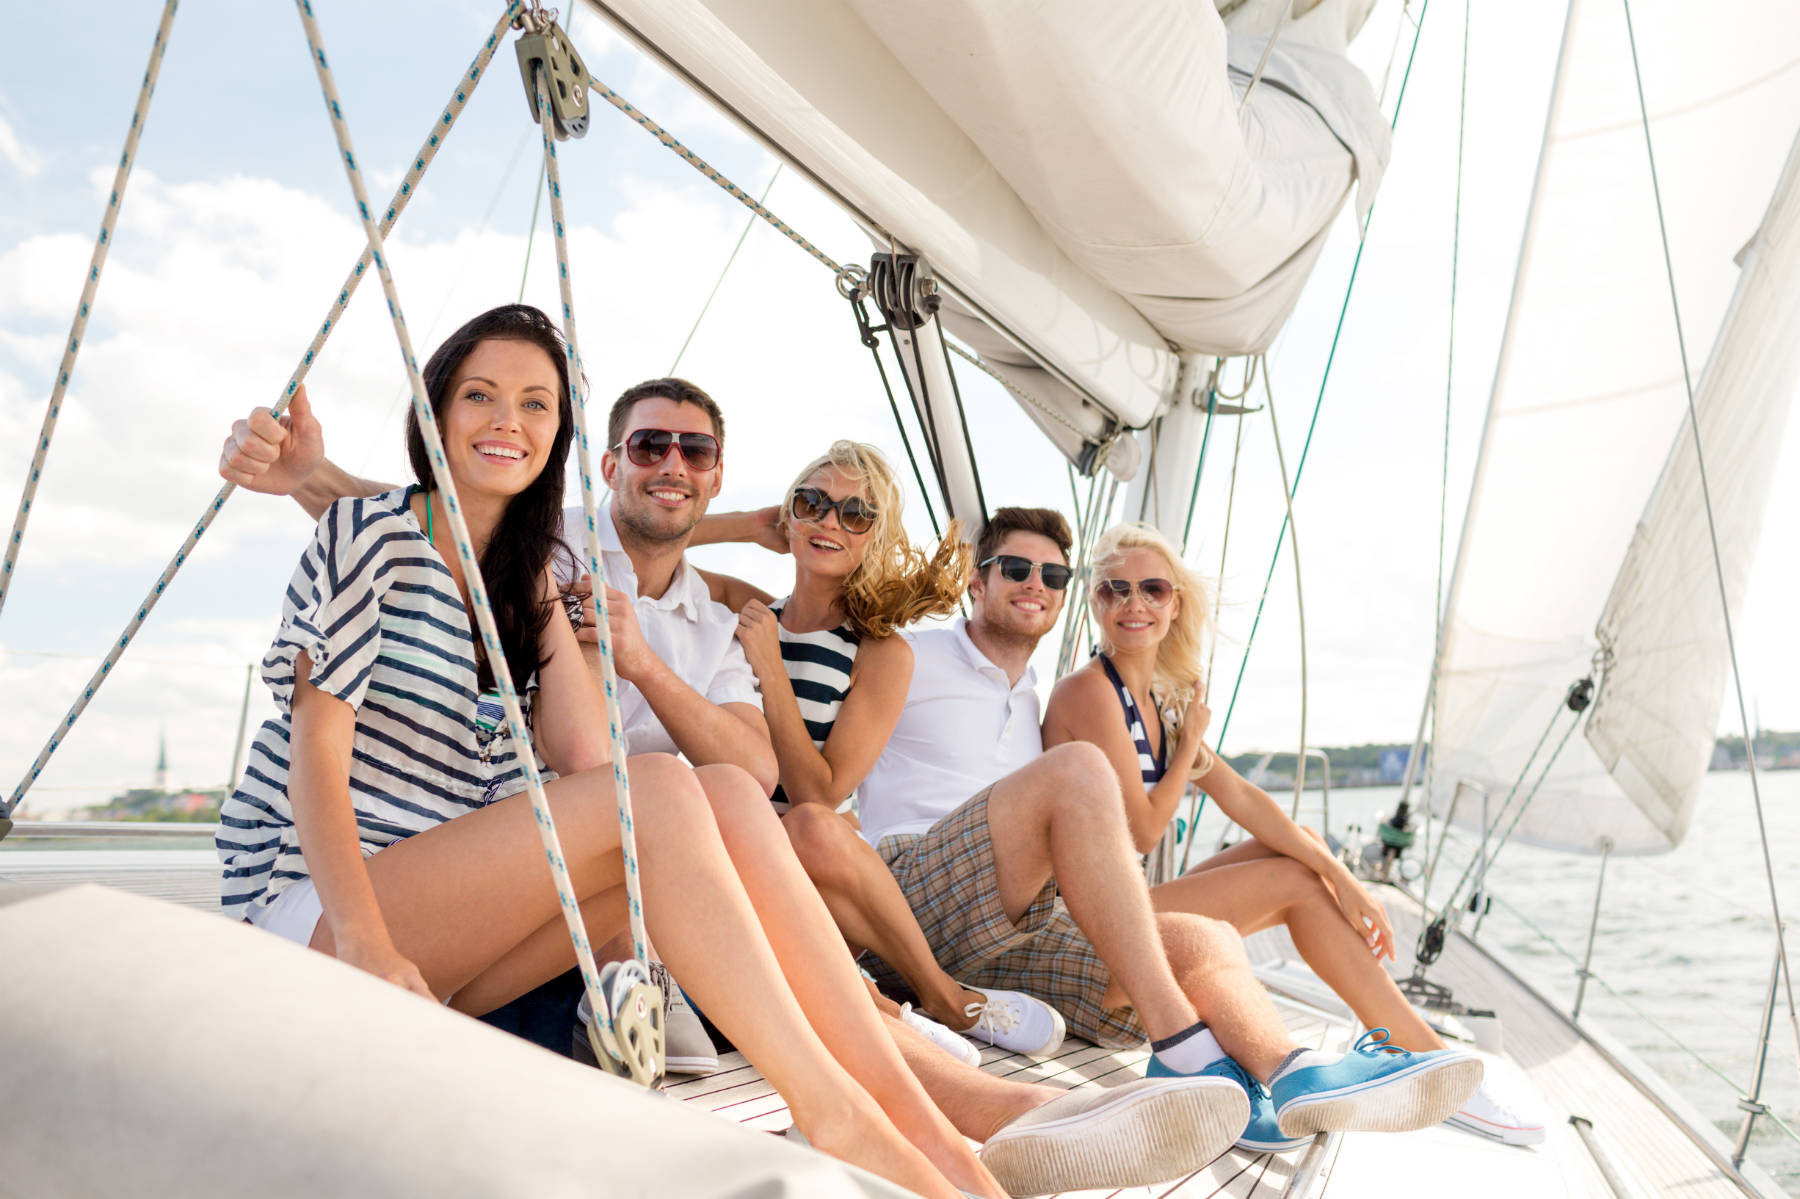 What to Wear When You Go Sailing